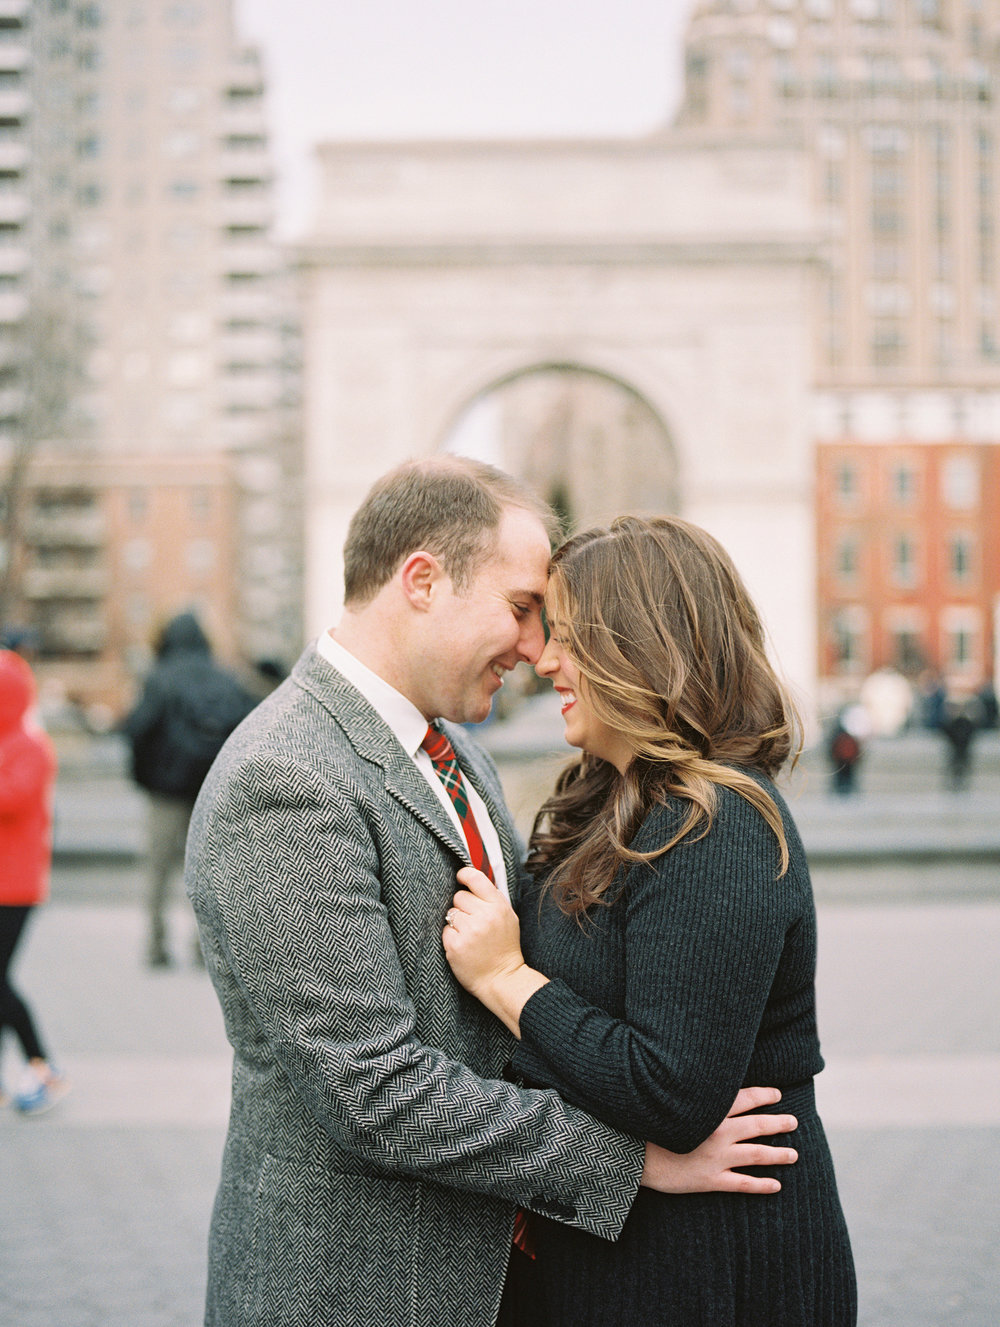 Hudson-Nichols-New-York-City-Film-Photography-NYC-Washington-Square-Park-Engagement_003.jpg